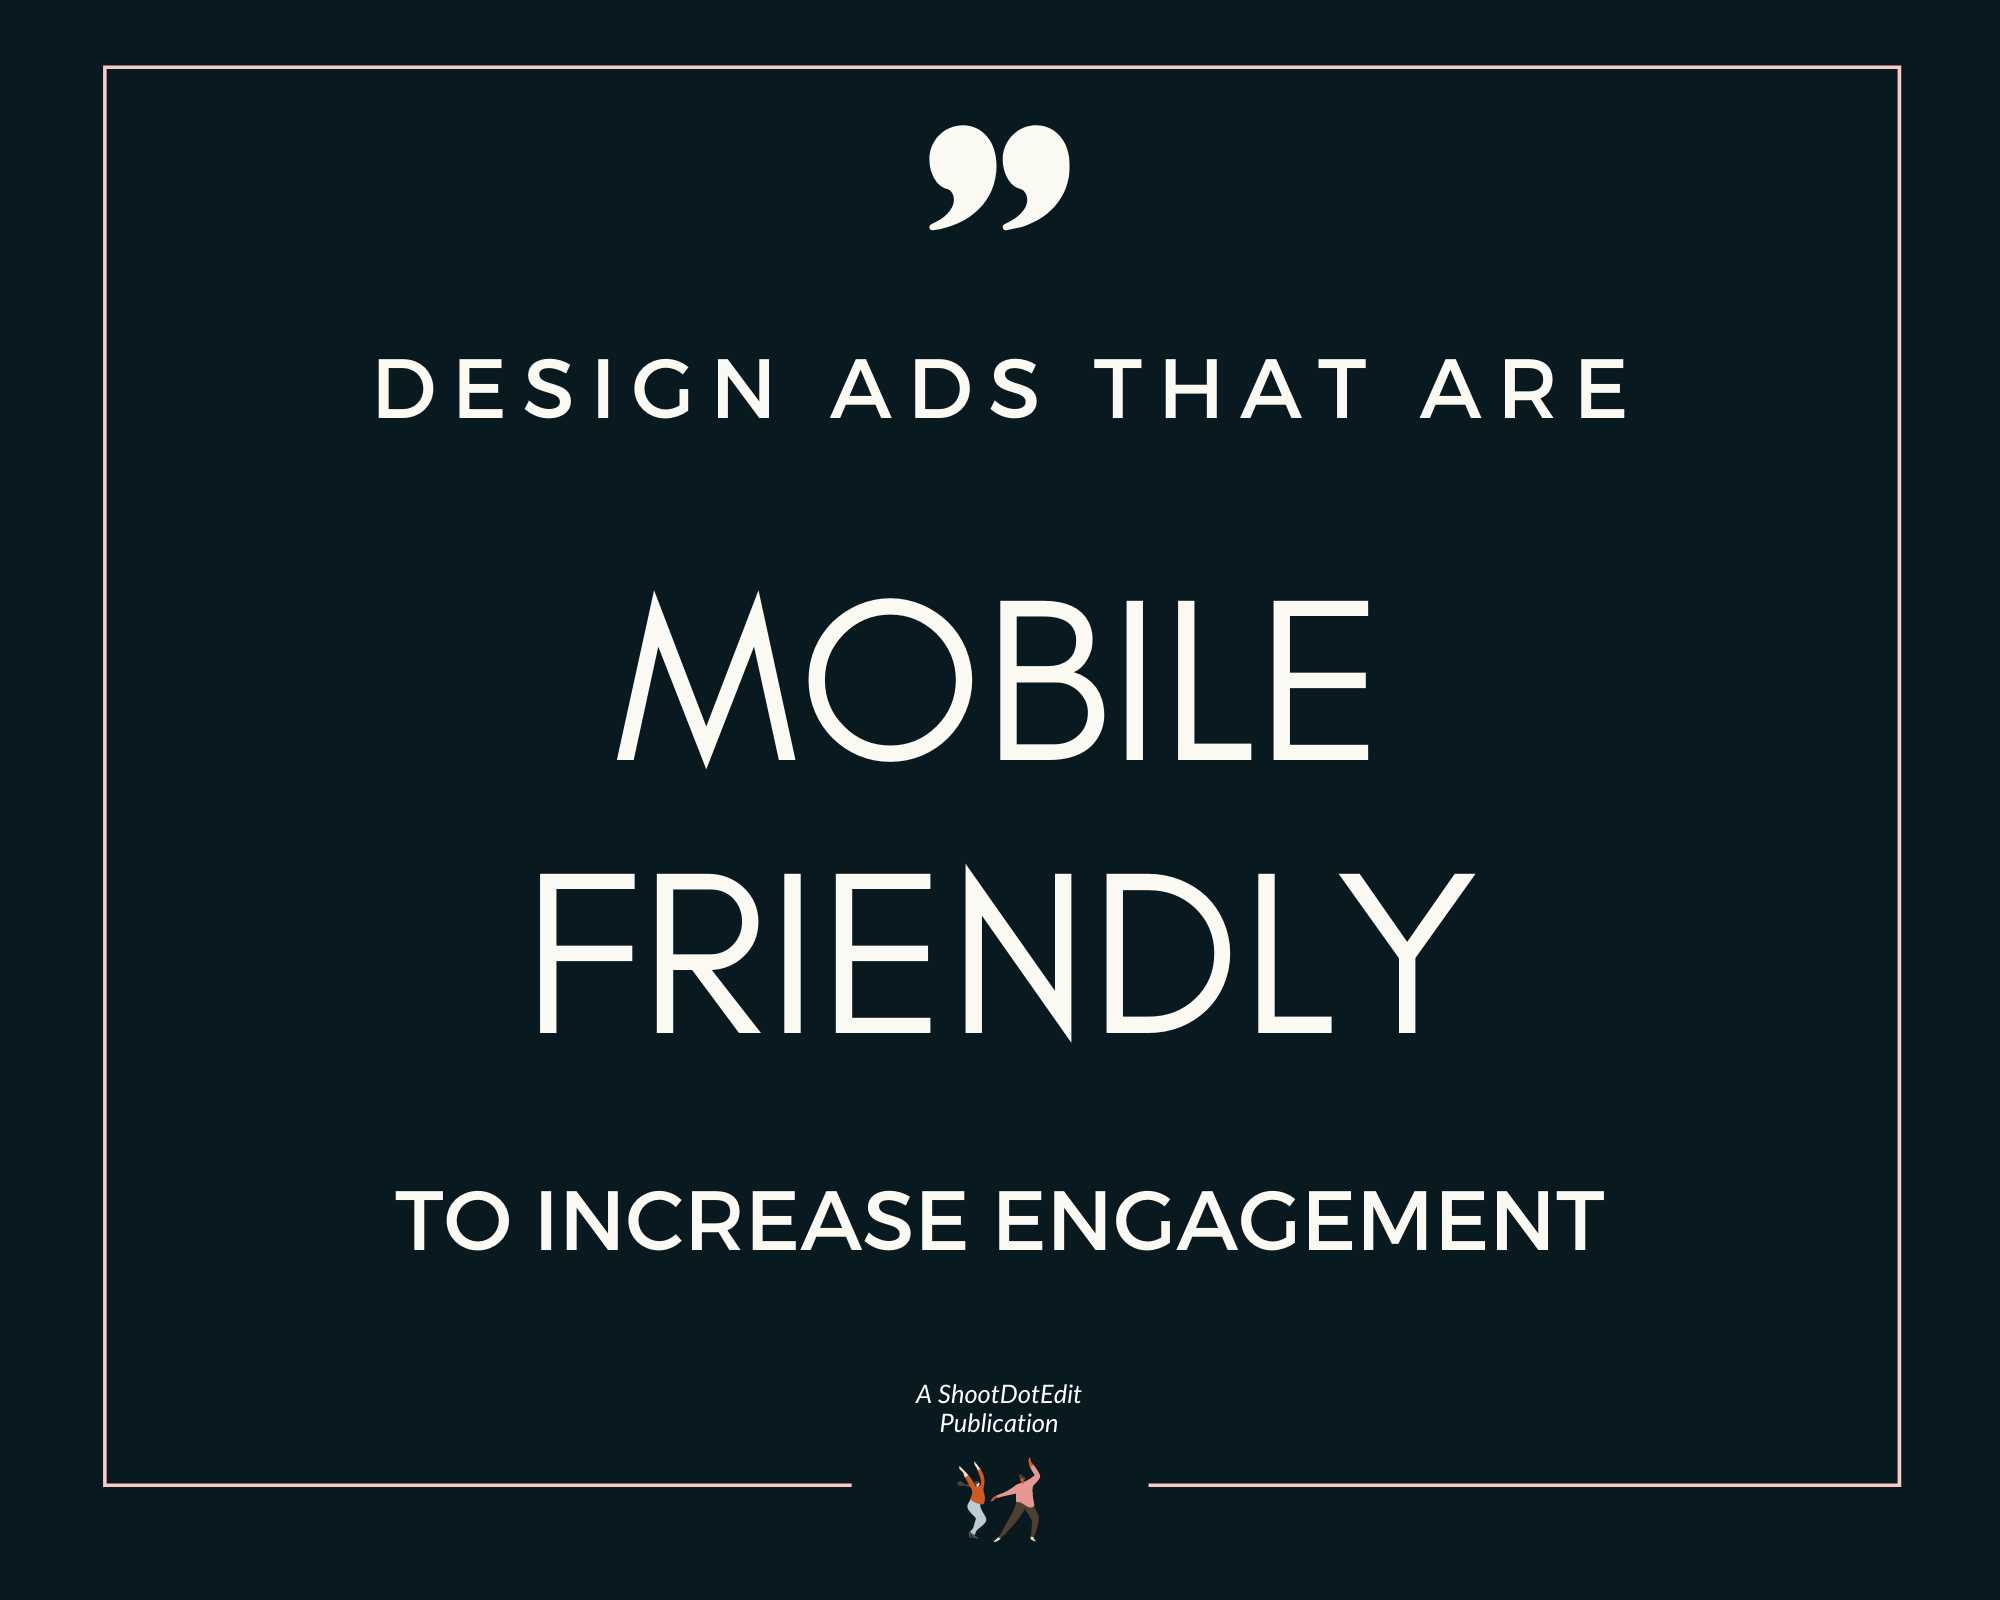 Infographic stating design ads that are mobile friendly to increase engagement